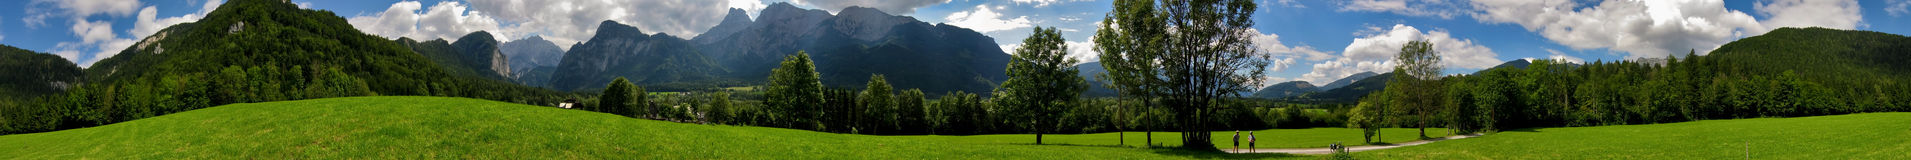 Summer panorama from alps royalty free stock photos